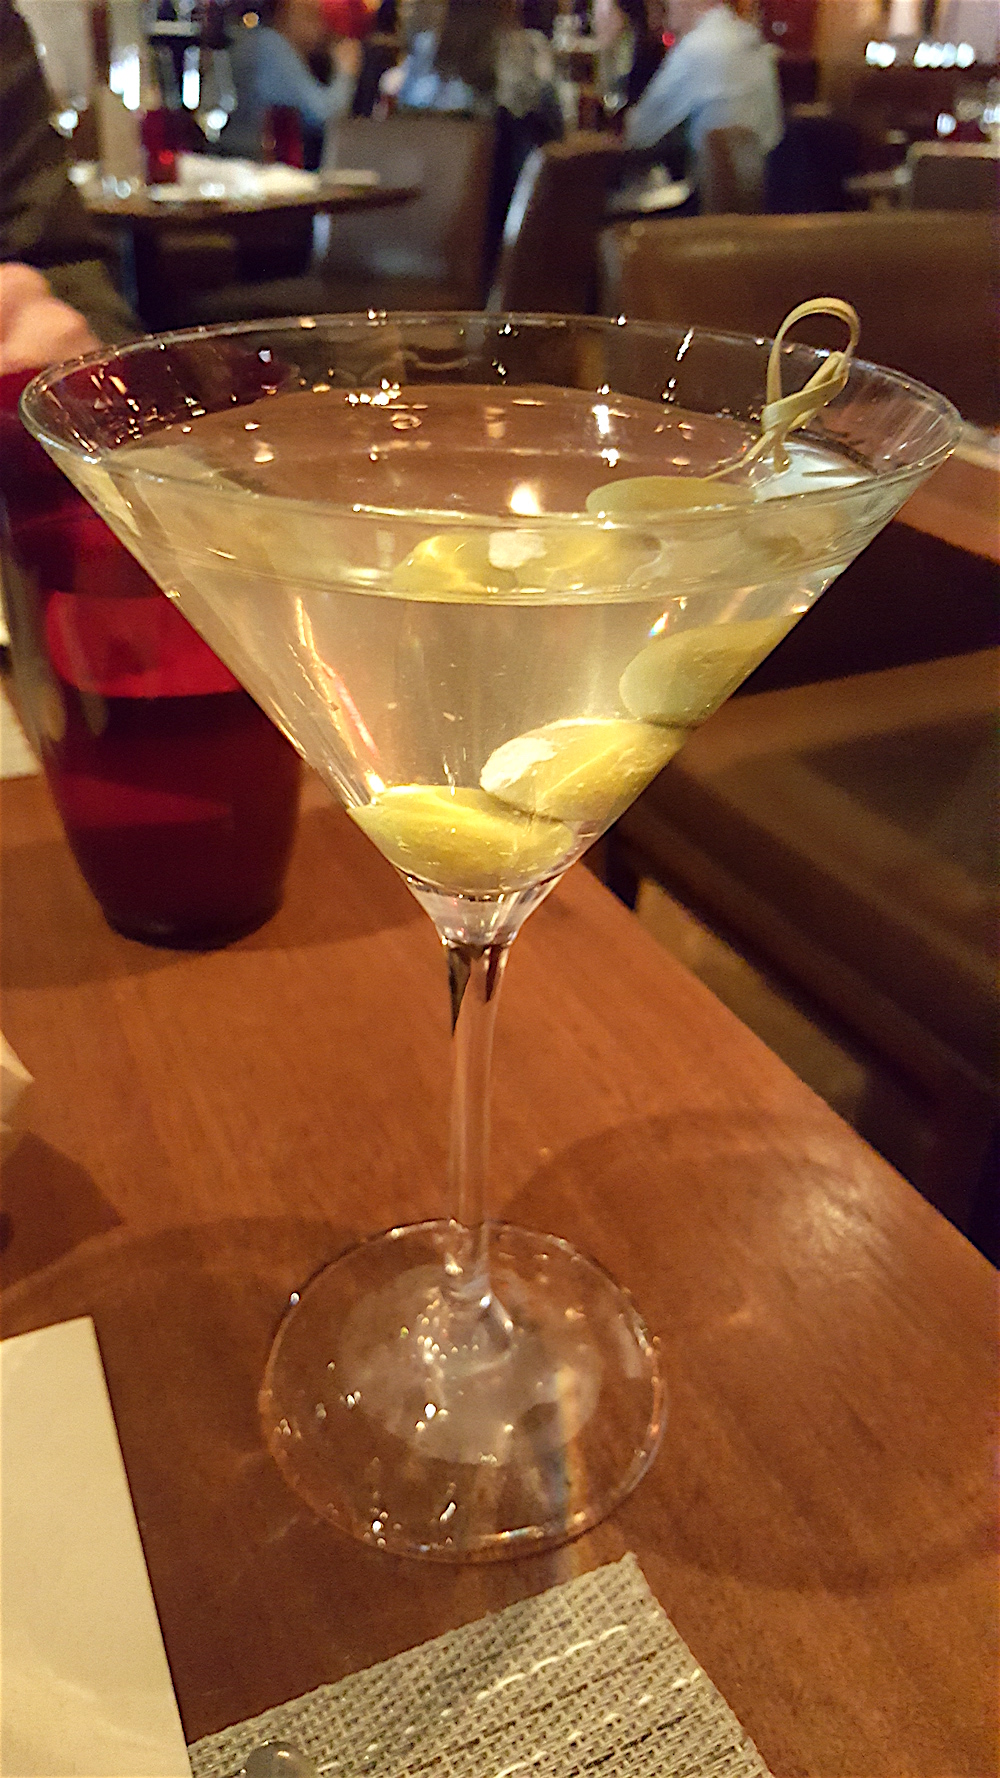 My first order of business. Vodka martini, dirty, up, with blue cheese olives. Yes, please.